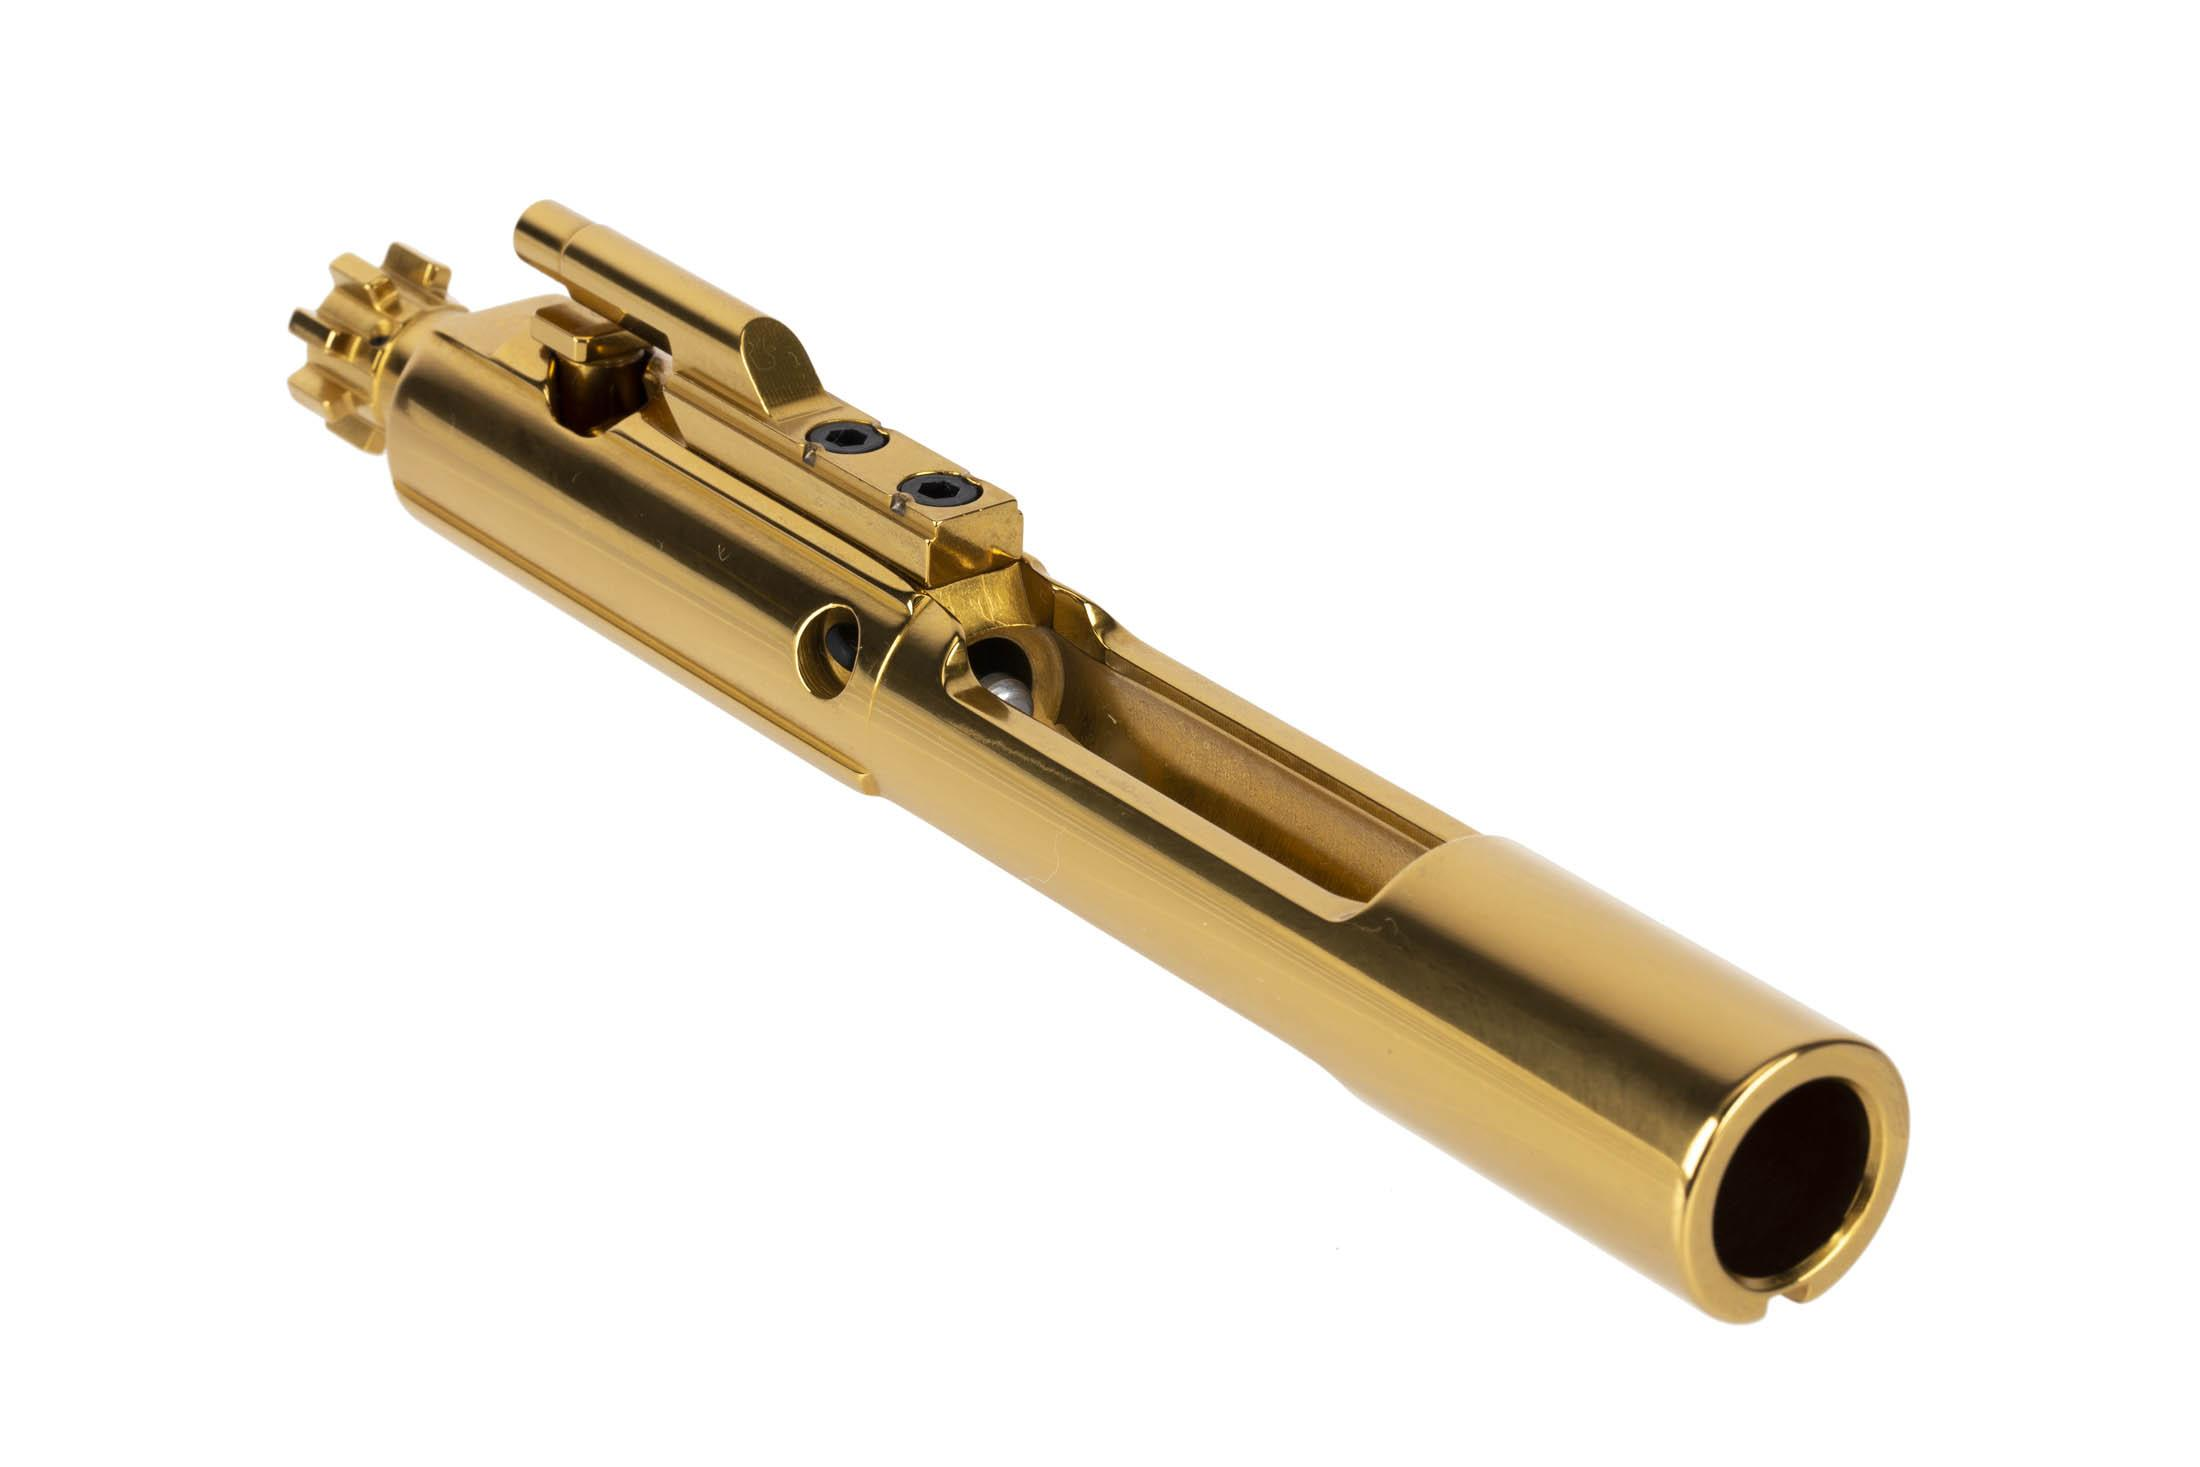 Cryptic Coatings 6.8 SPC AR-15 bcg with Mystic Gold finish has fully MIL-SPEC construction